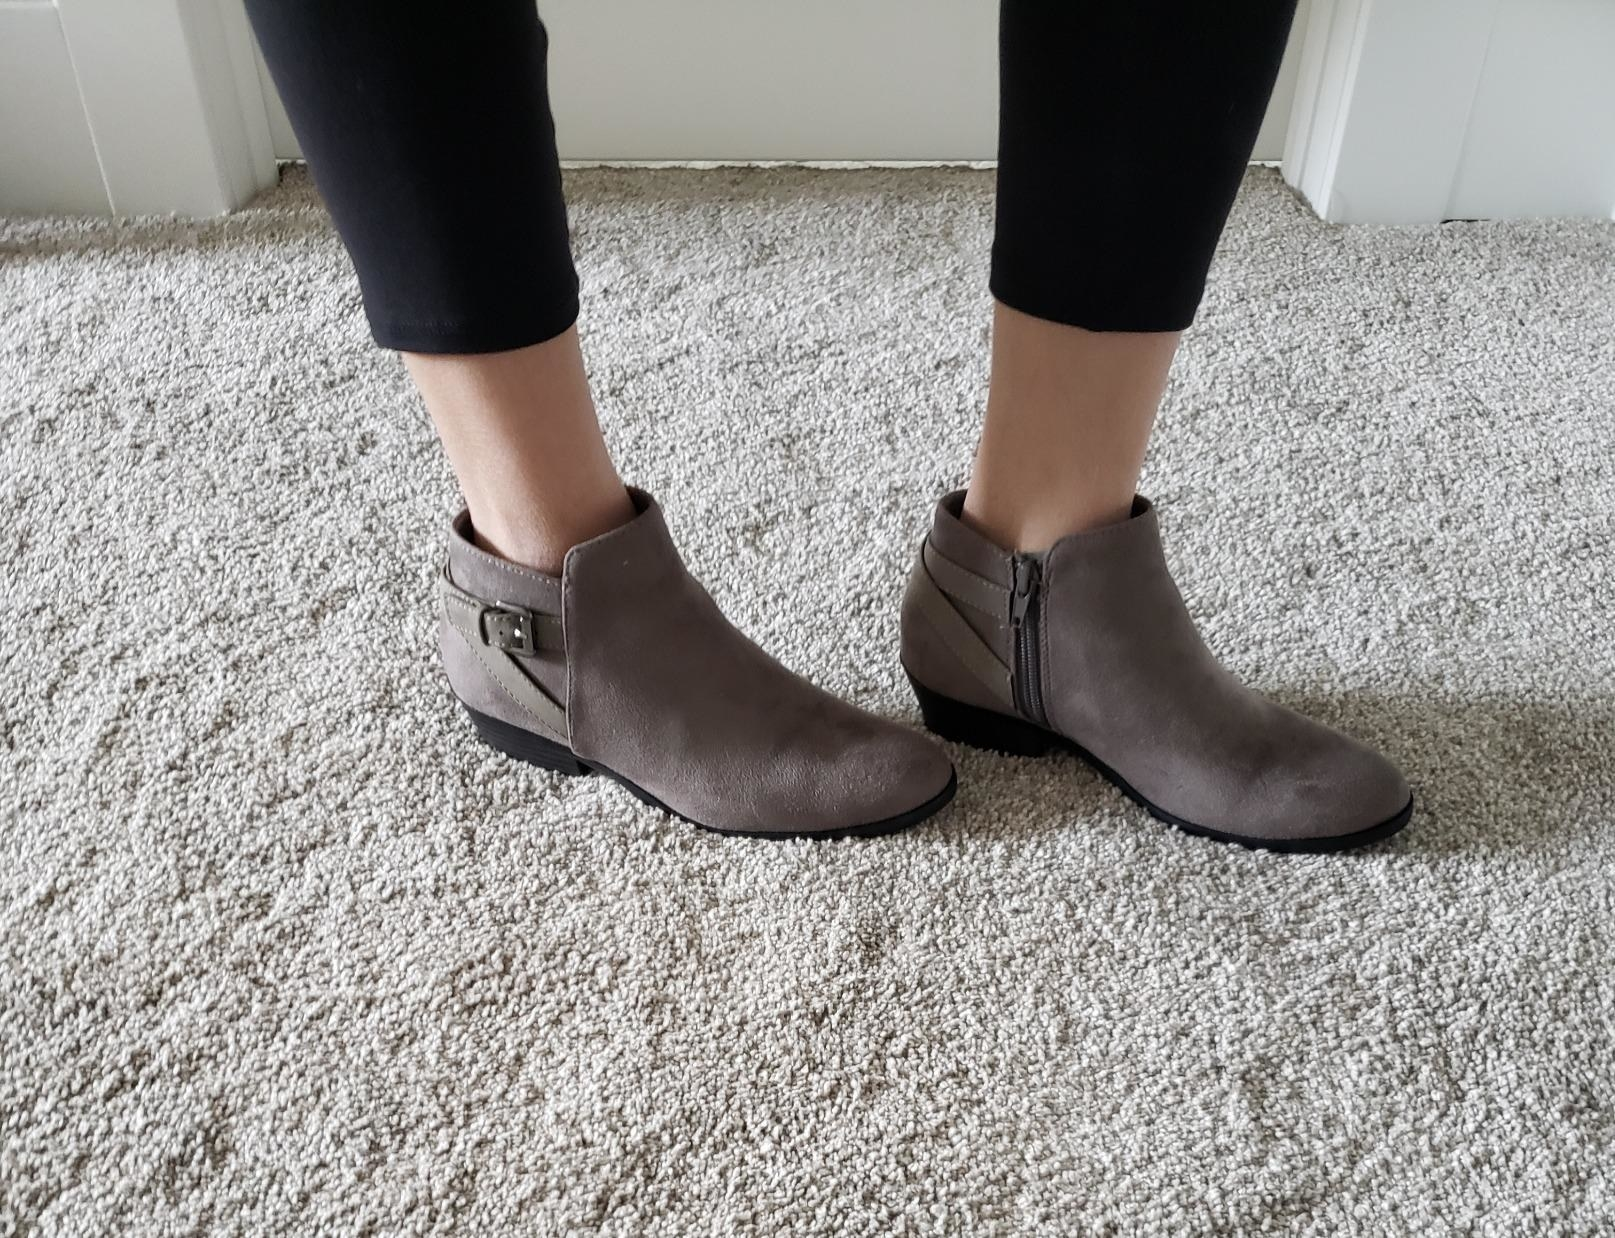 reviewer wearing the boots in grey with buckle straps around the heel